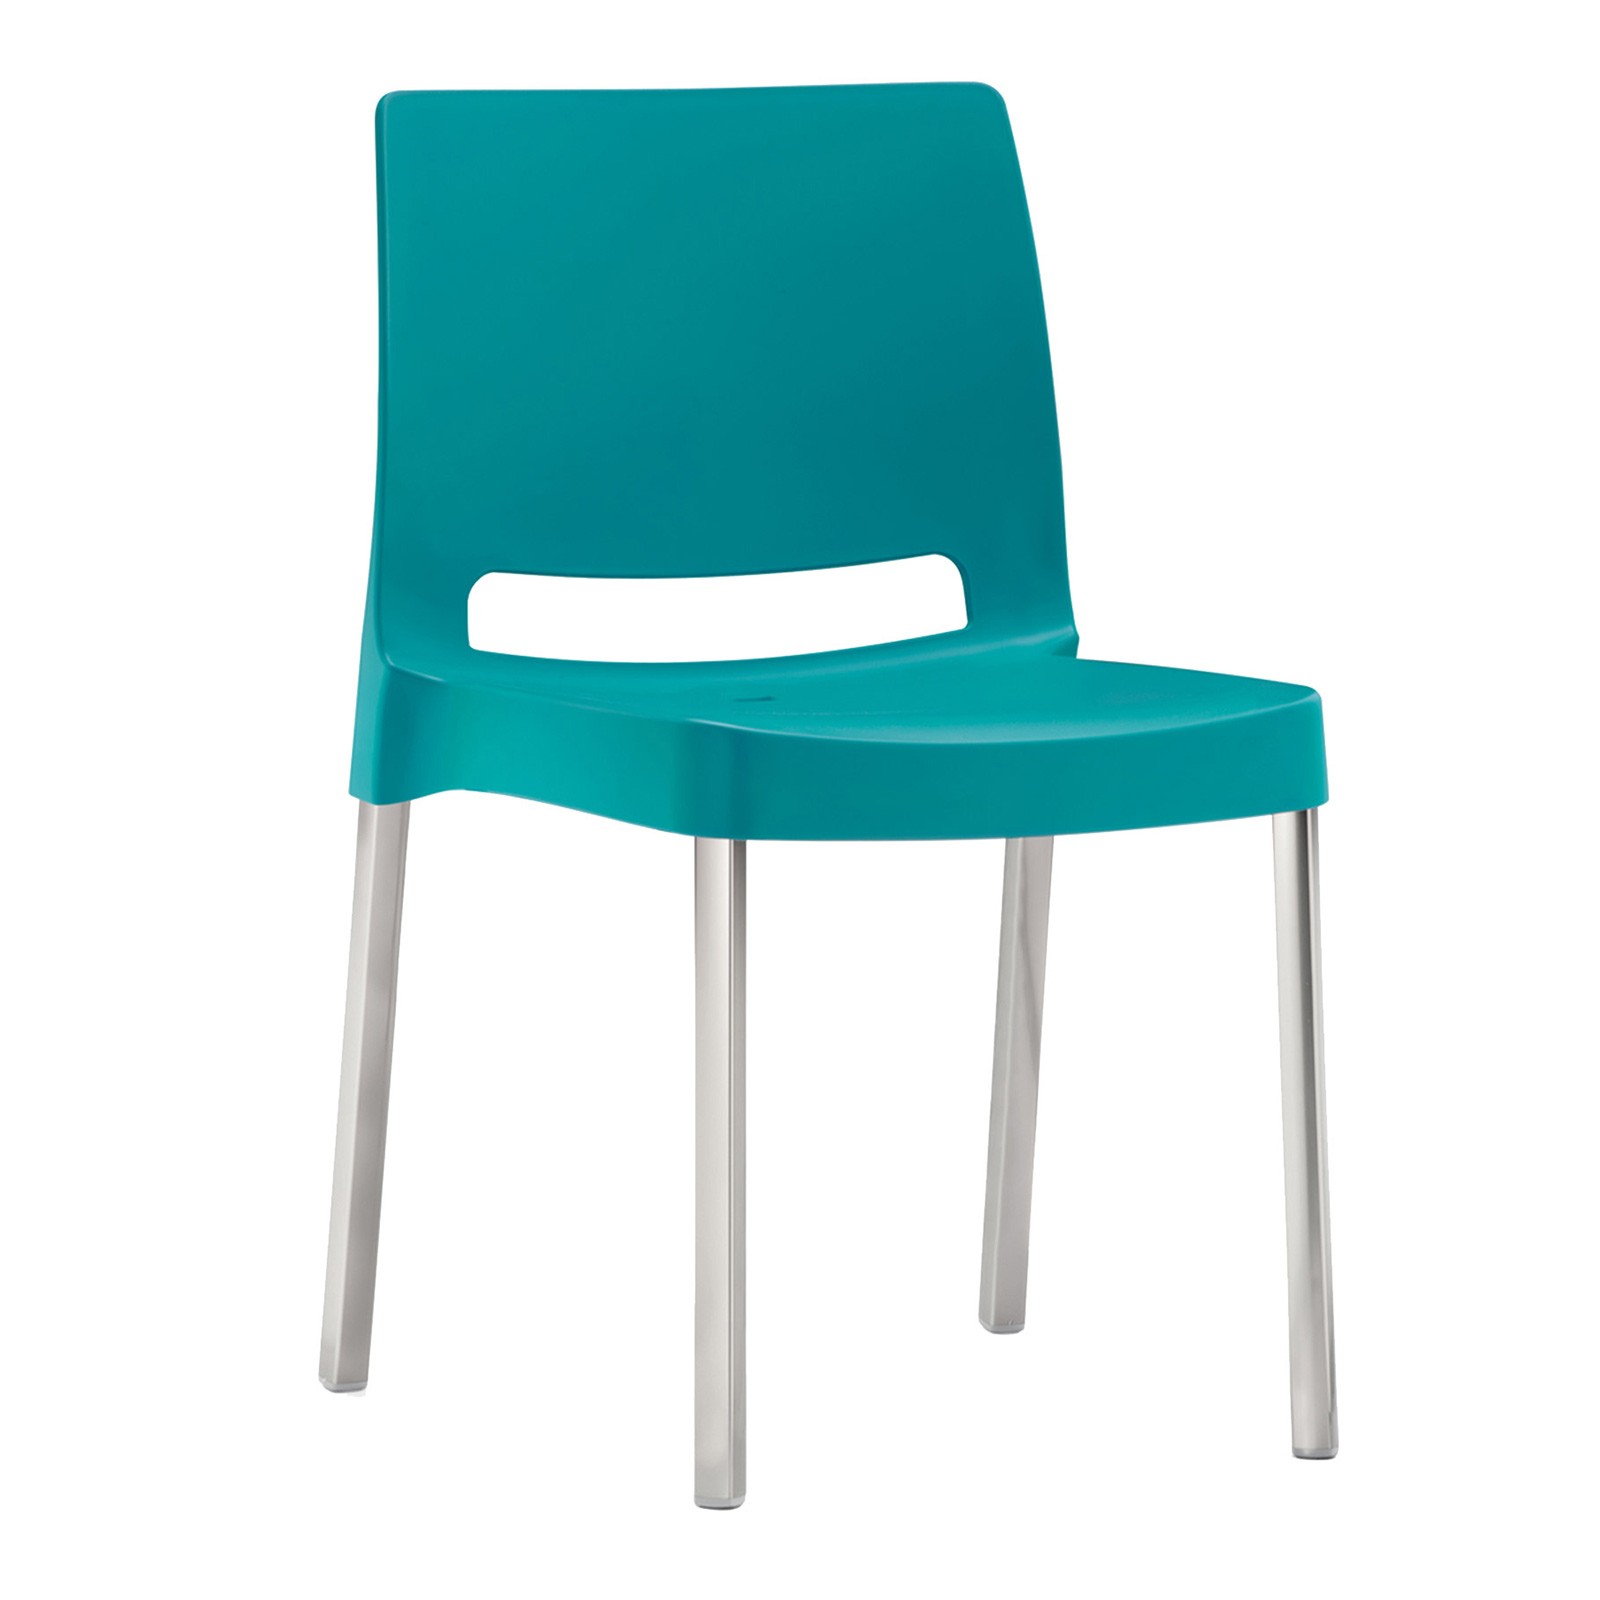 Florida Seating JOI/AQUA chair, side, stacking, outdoor